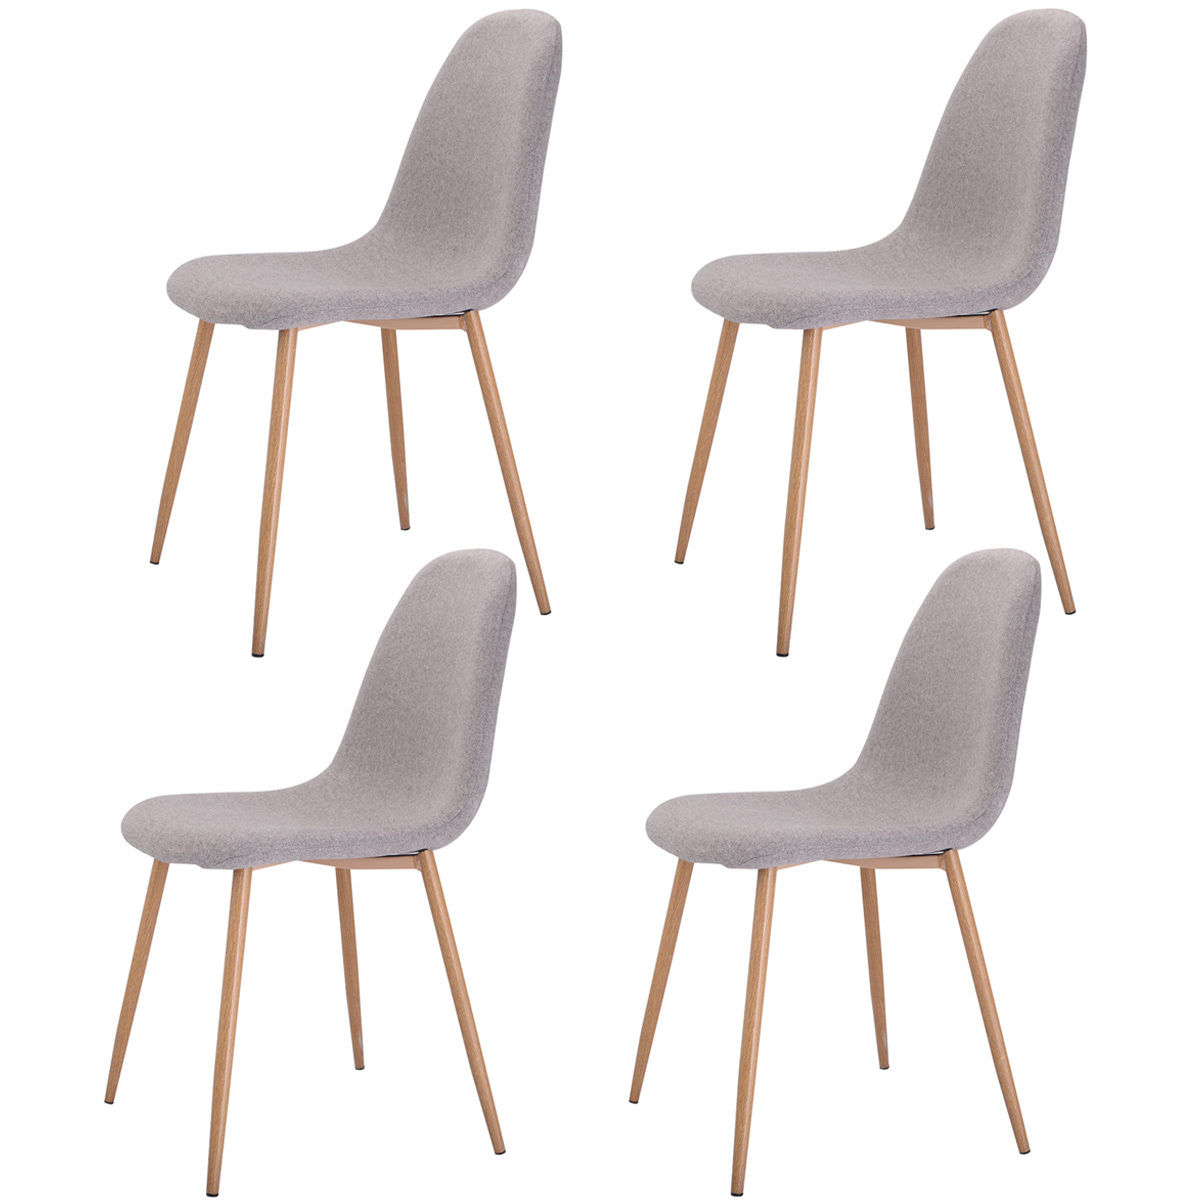 set of 4 chairs front porch rocking chair giantex pcs modern dining accent side